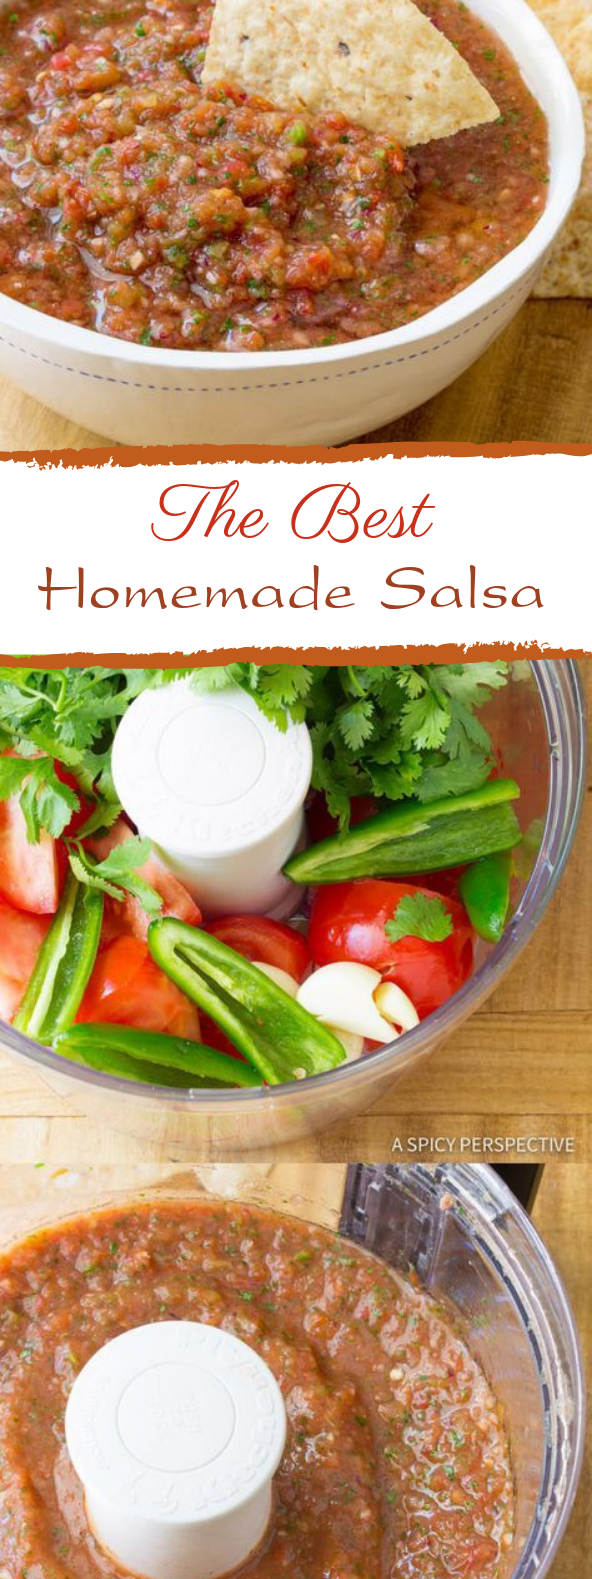 The Best Homemade Salsa #dip #mexicanfood #authenticmexicansalsa